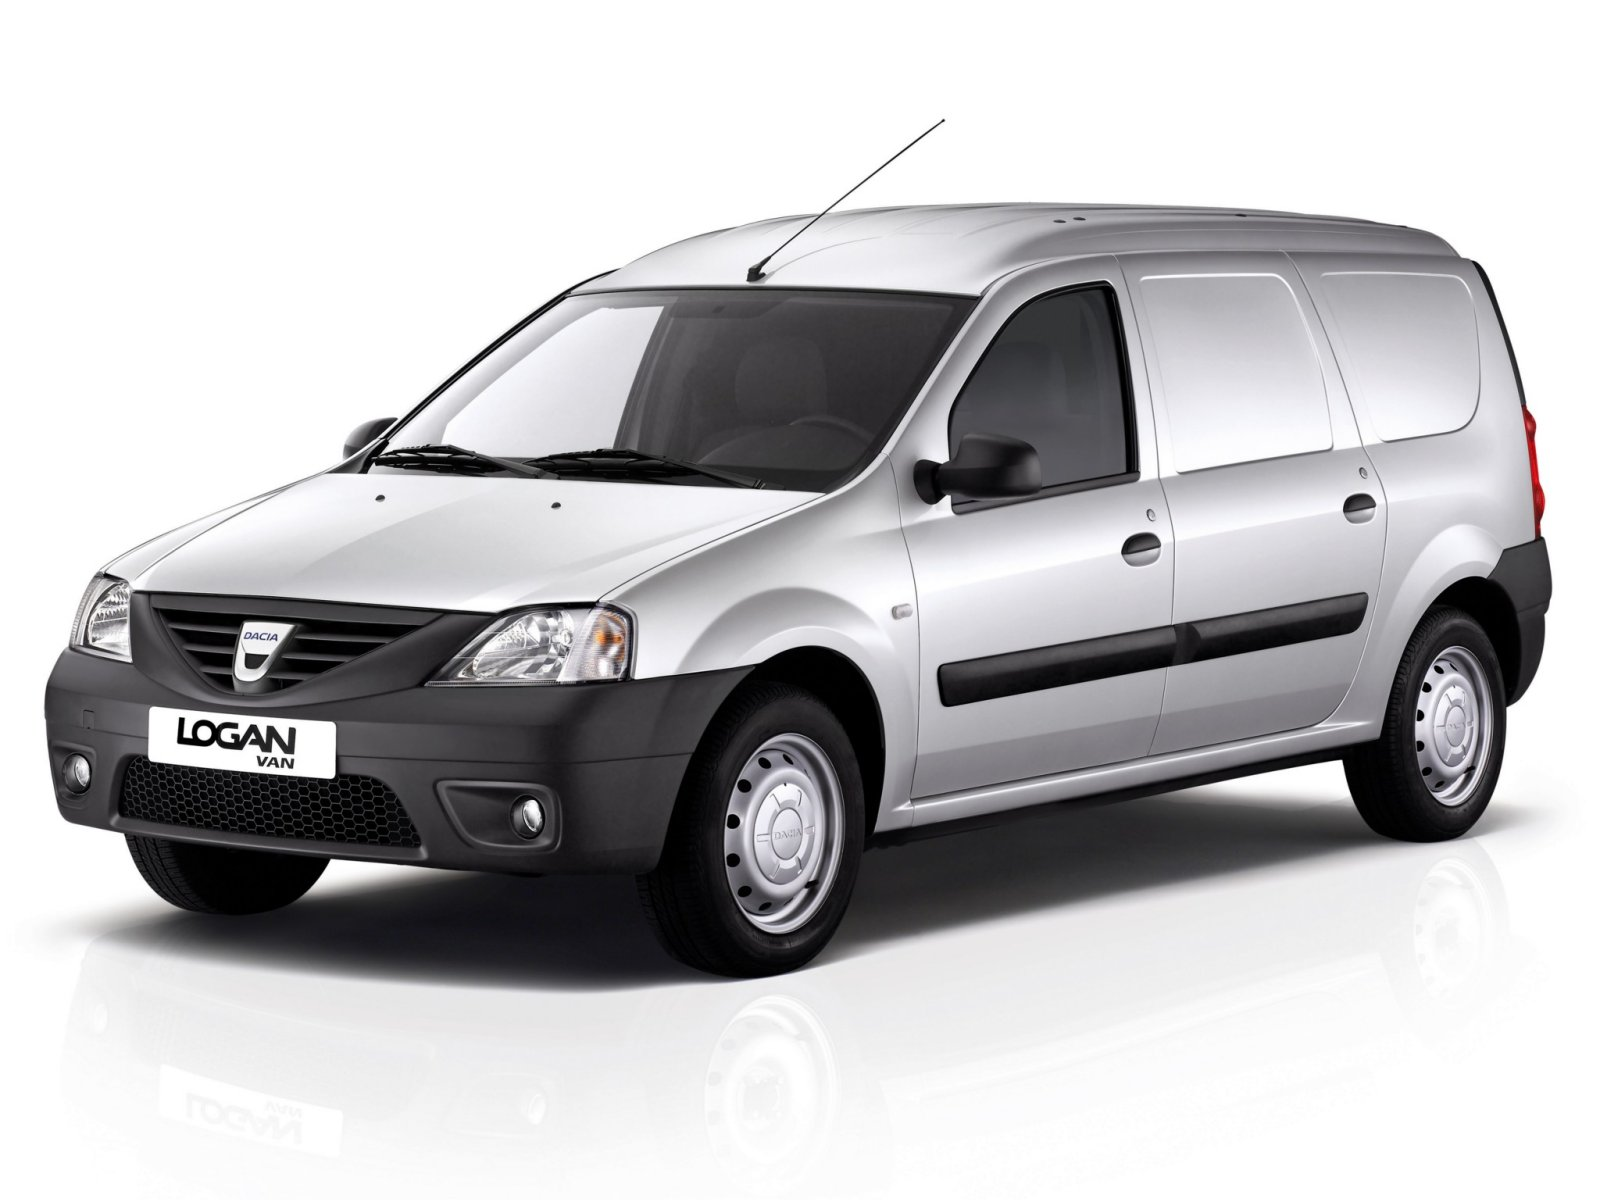 dacia logan technical specifications and fuel economy. Black Bedroom Furniture Sets. Home Design Ideas